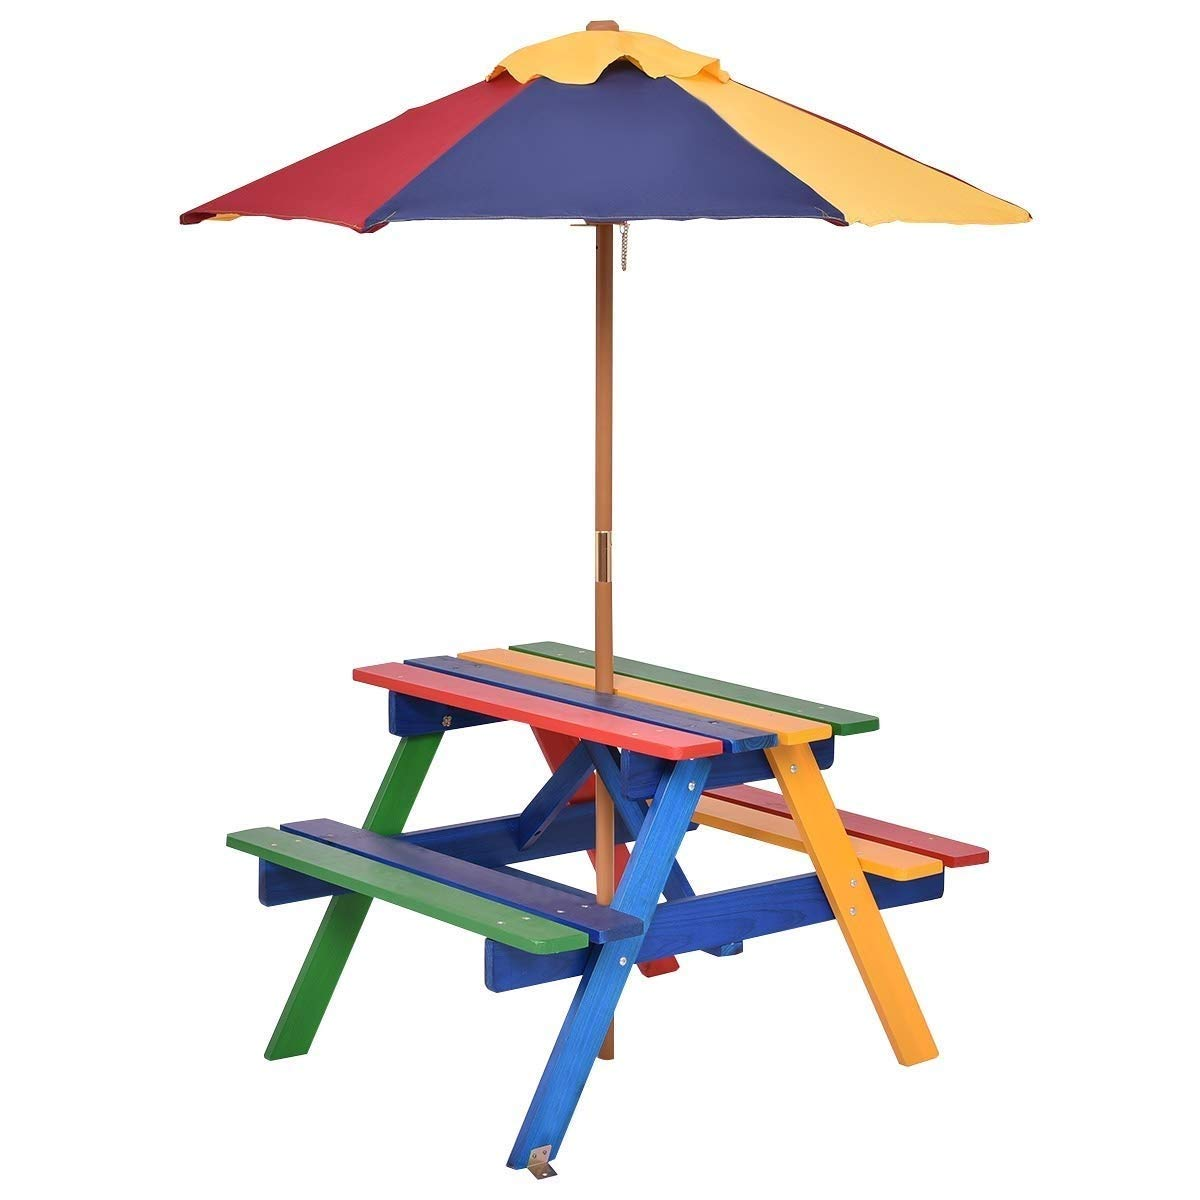 LeZhel Shop Brand New and 4 Seat Kids Picnic Folding Garden Umbrella Table, Made with Durable Wood, Seats Up to 4 Children, Ideal for Eating Meals, Playing Games, Working On Homework by LeZhel Shop